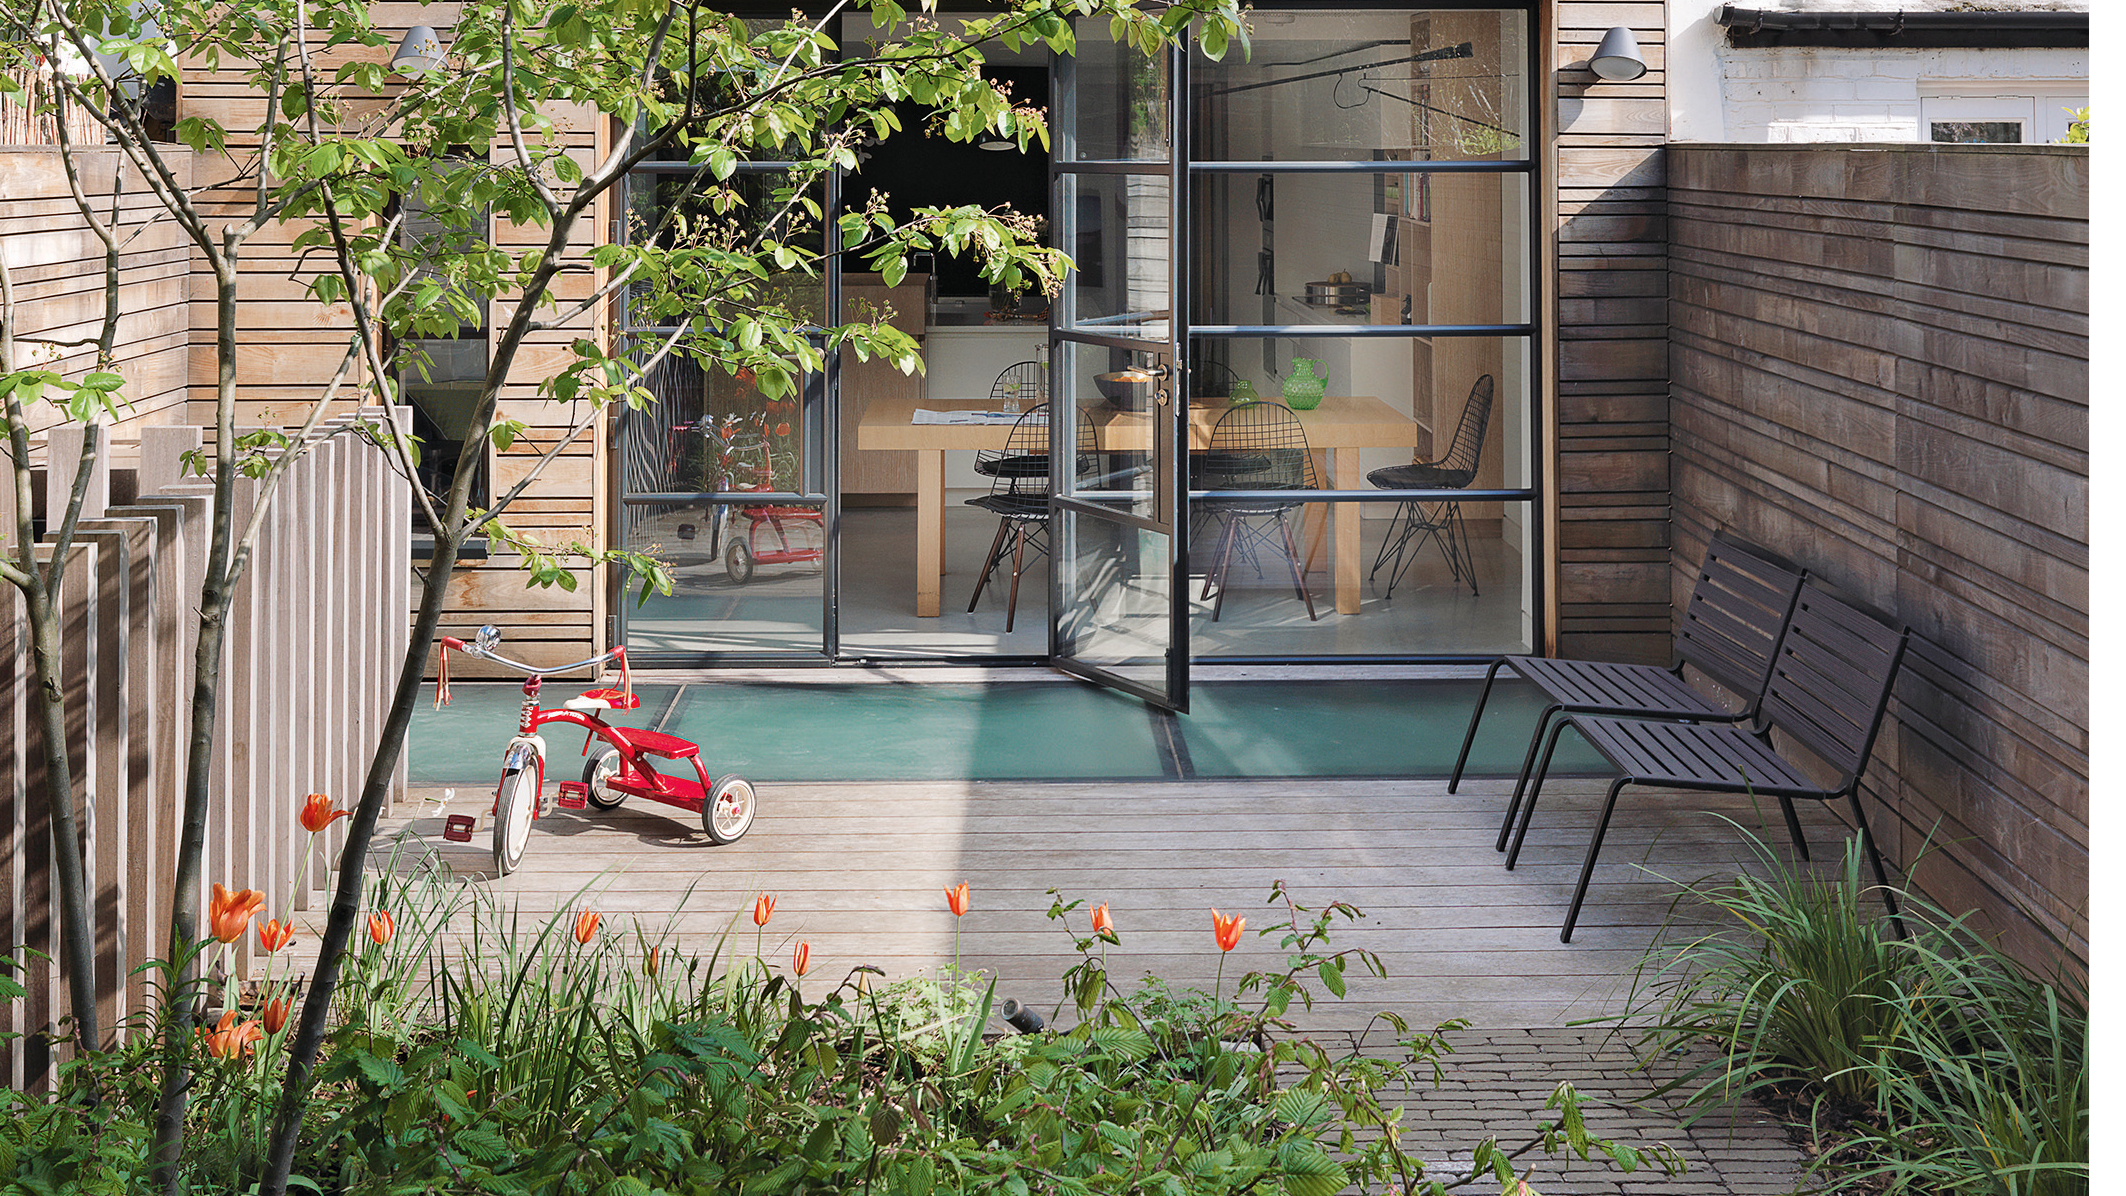 20 small garden ideas – planting ideas, layout inspiration and ...